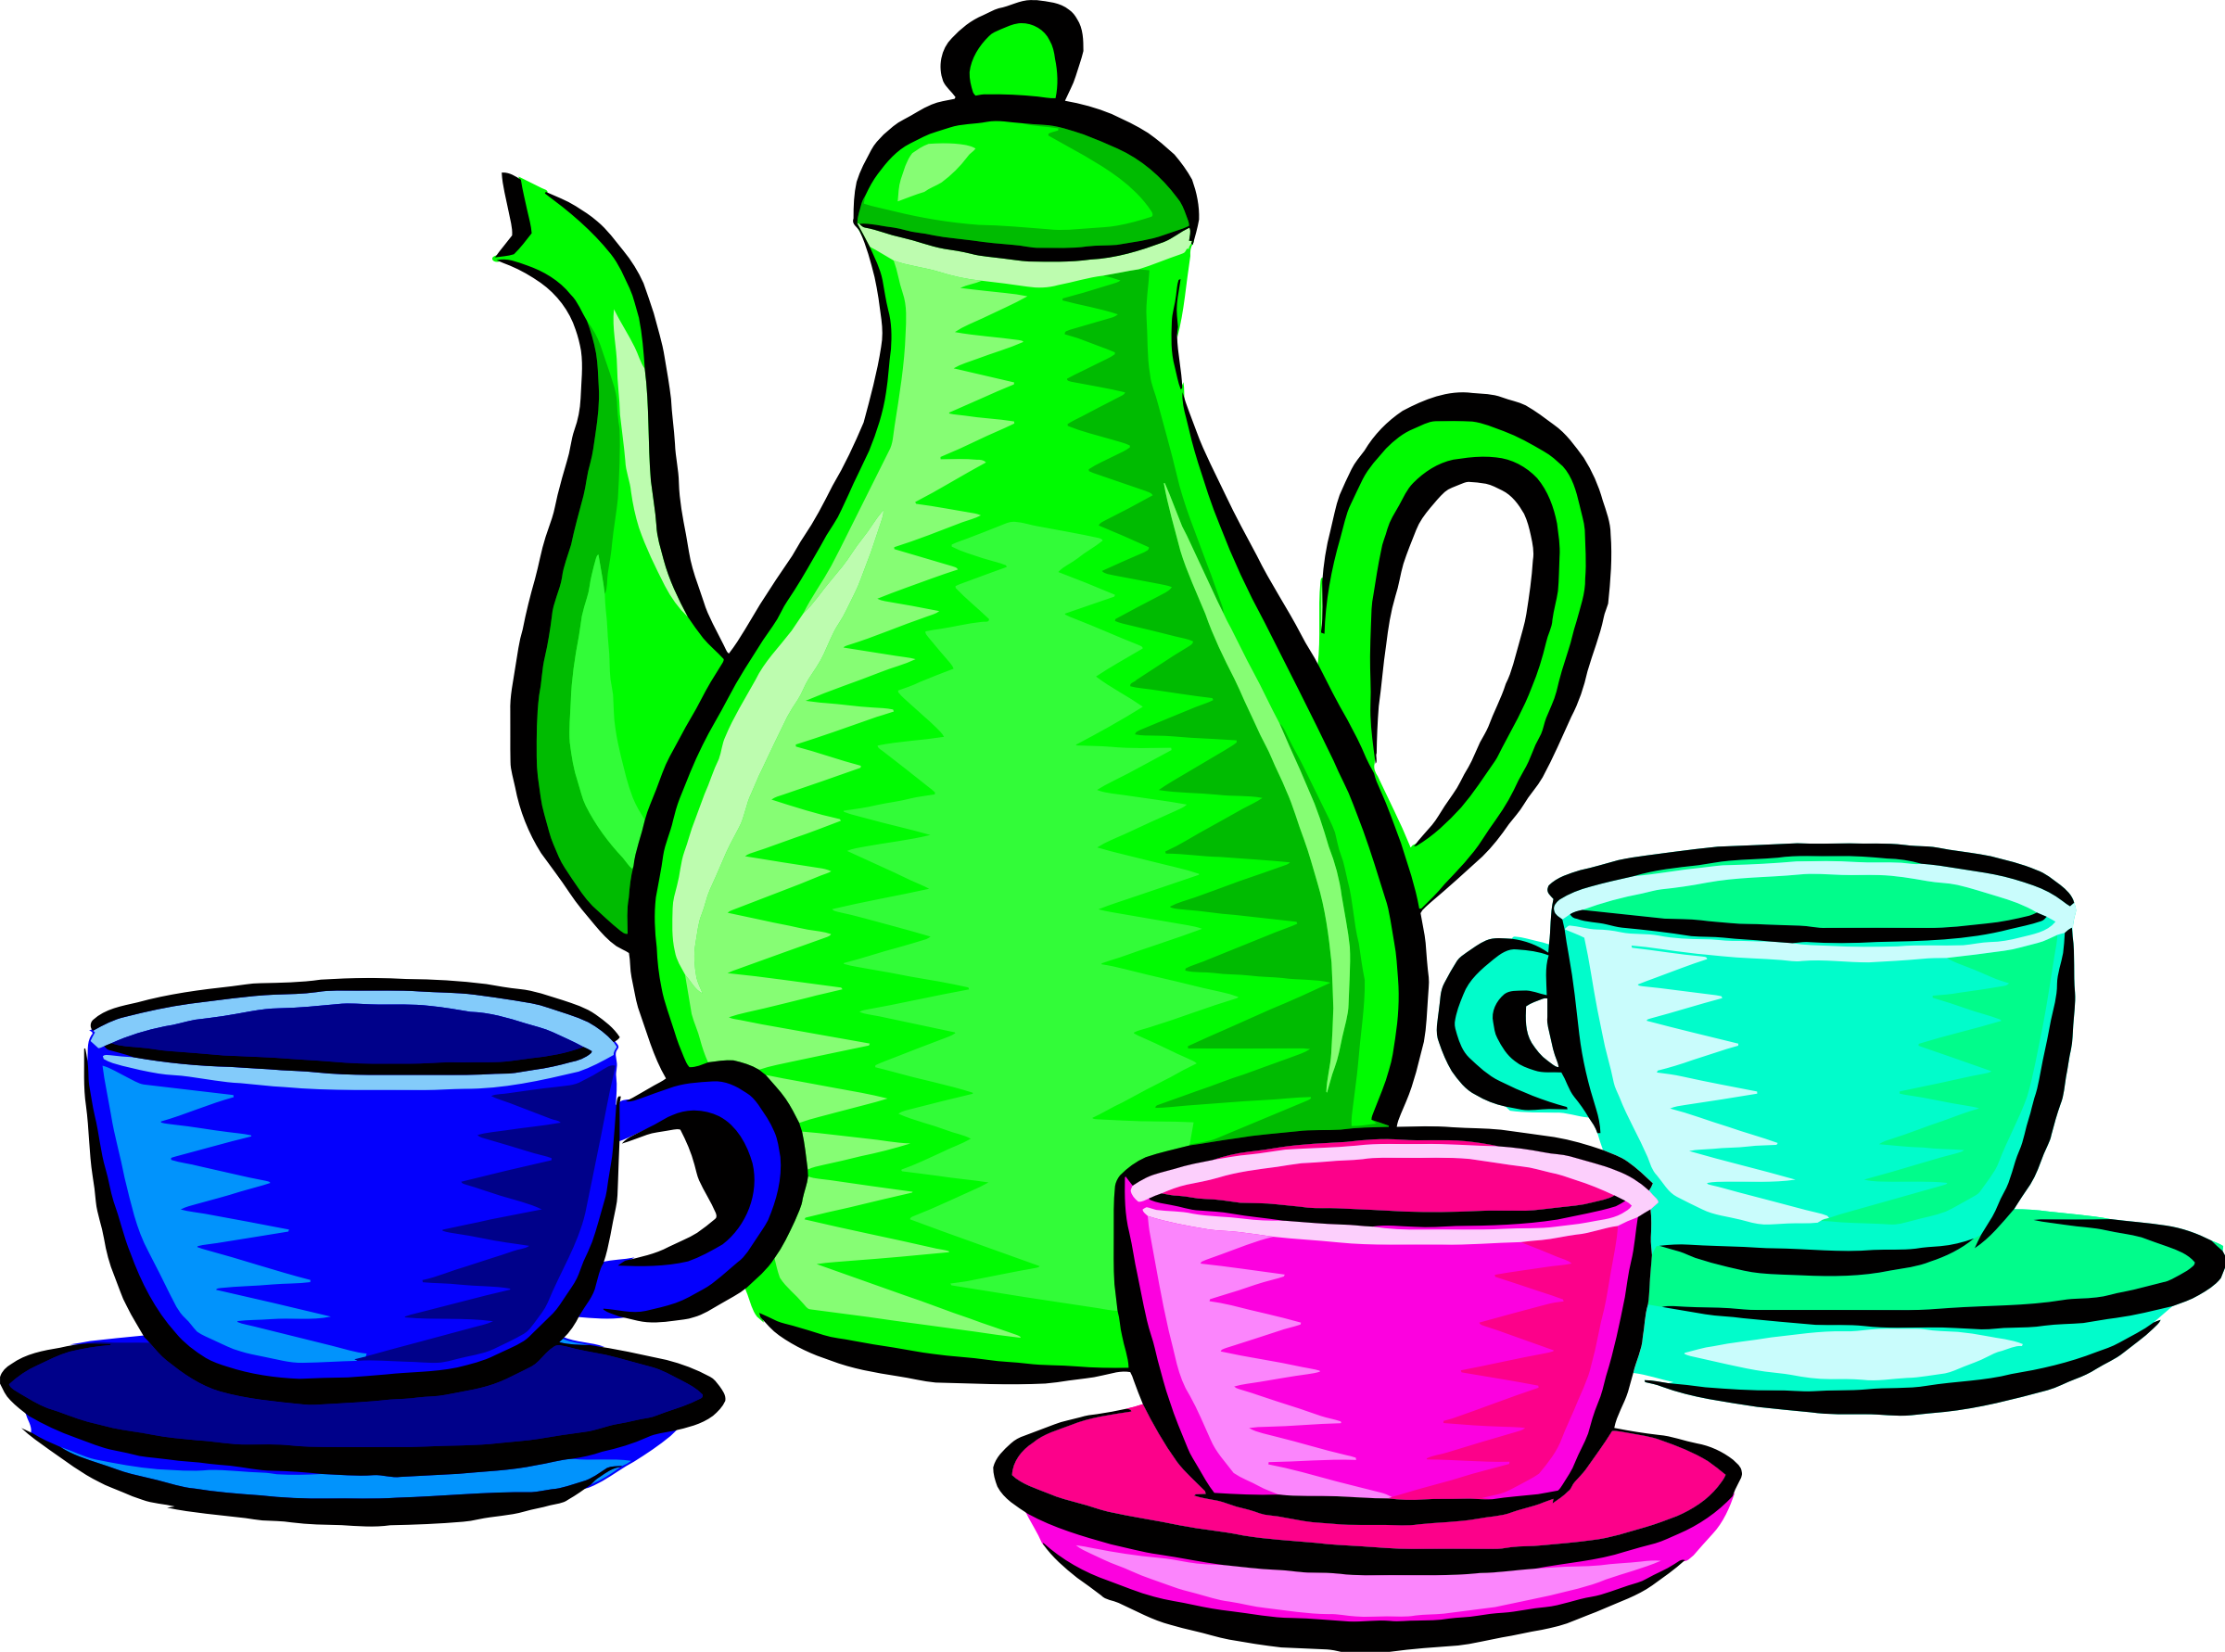 Coffee pot and cups. Clipart kitchen crockery